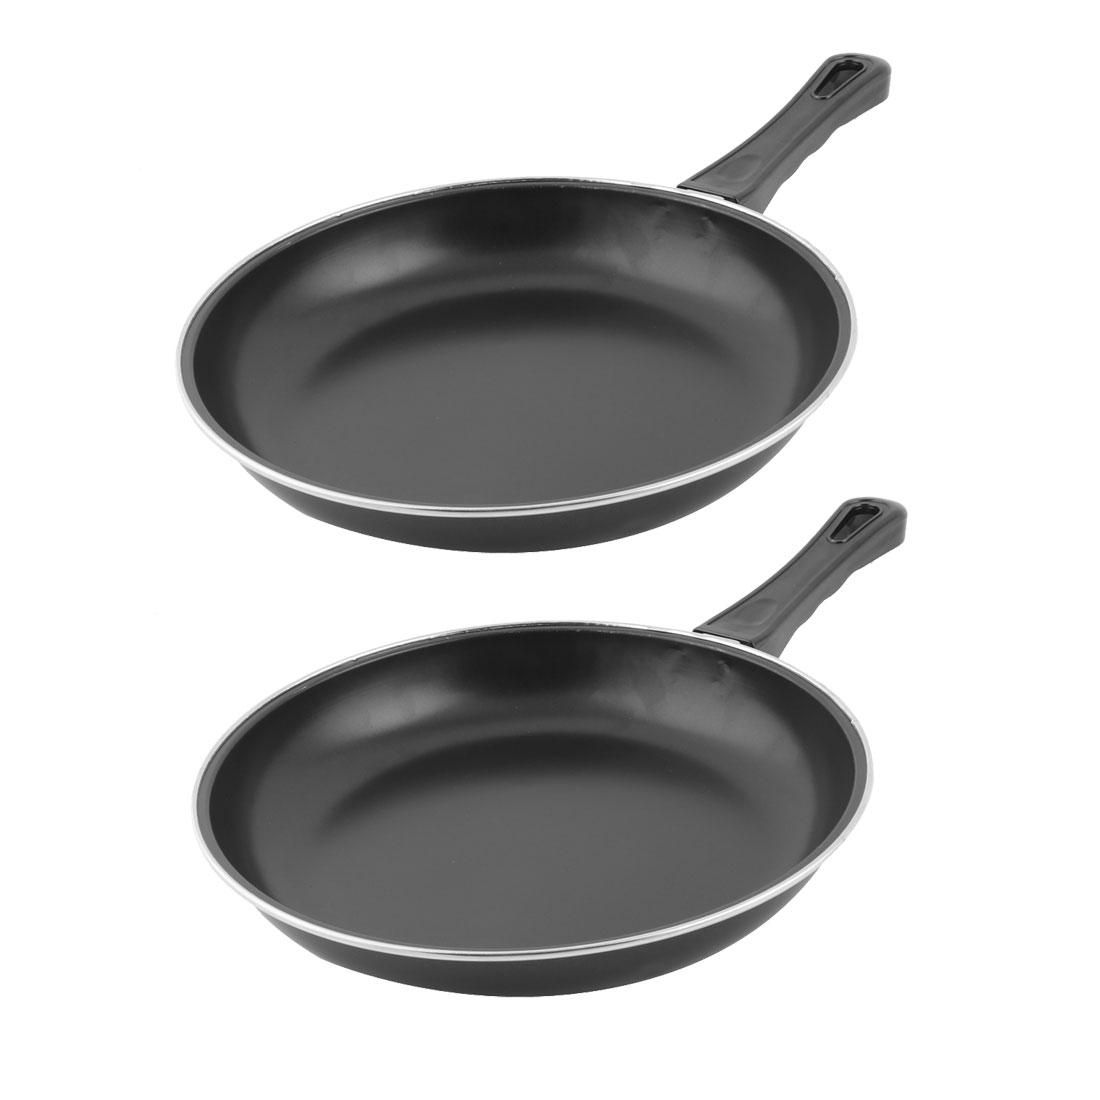 Home Kitchenware Aluminium Alloy Cooking Egg Pancake Frying Pan 15.9 Inches Length 2pcs